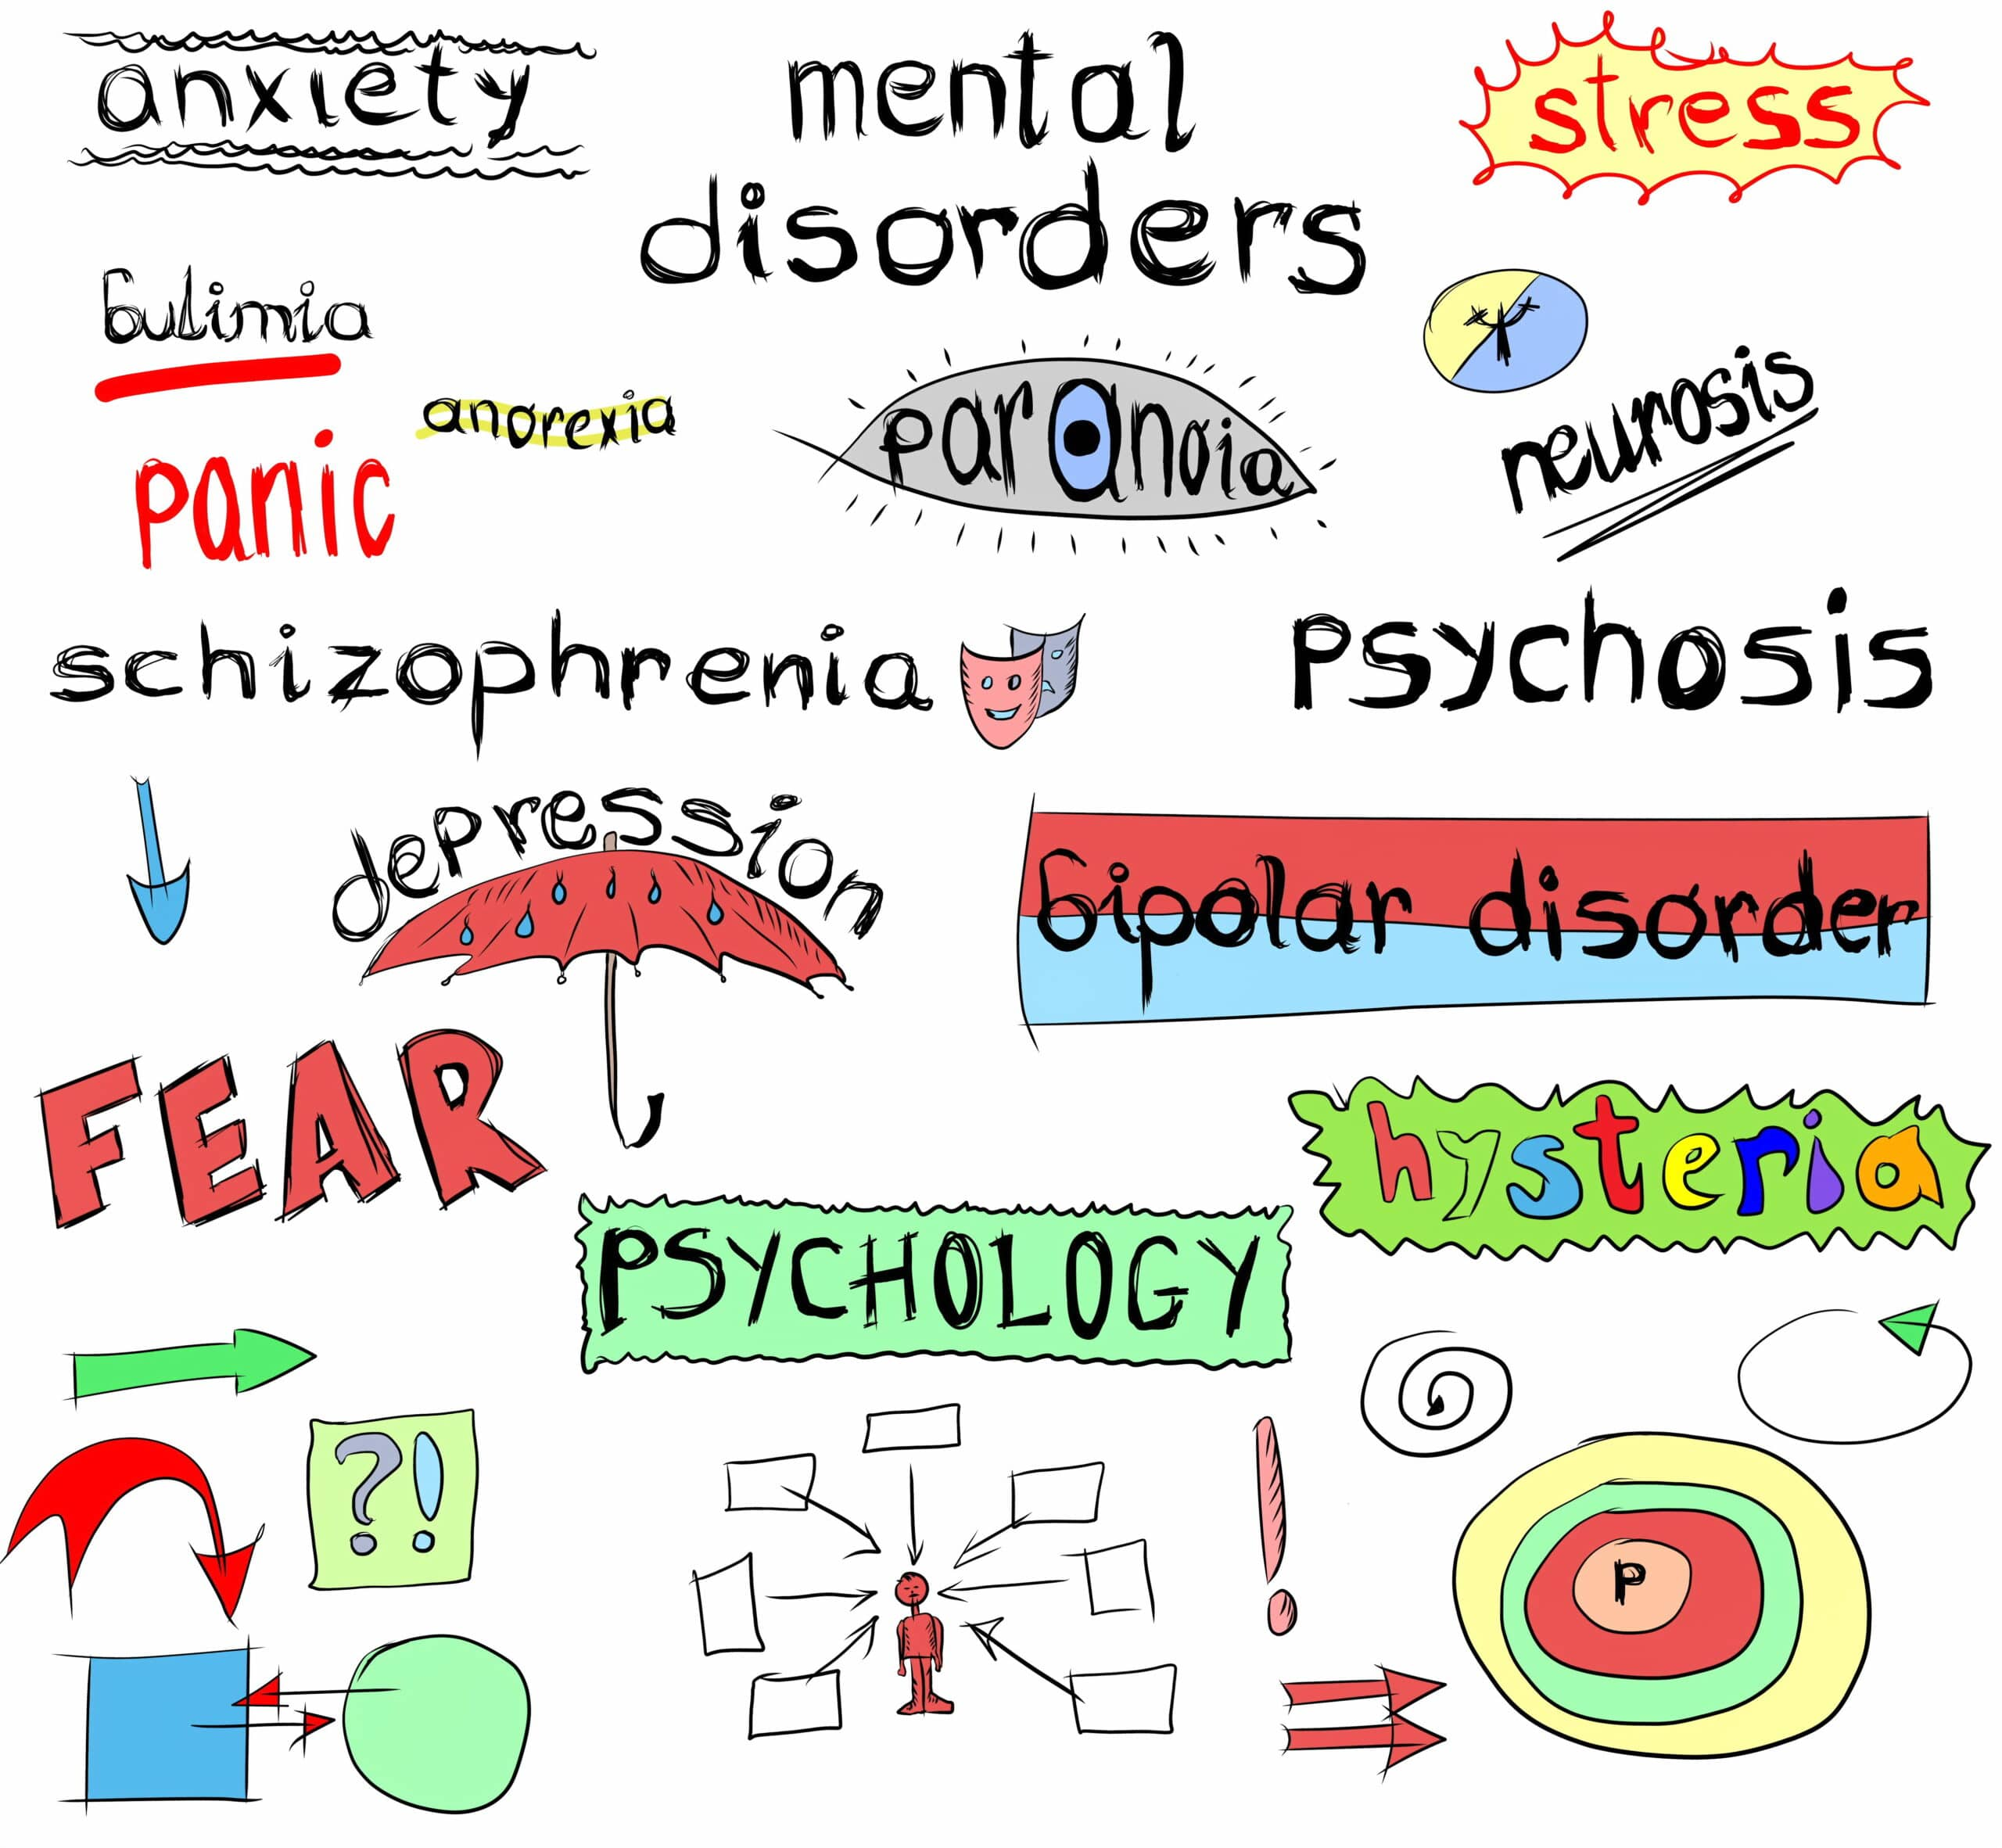 5 Ways To Improve Your Mental Health